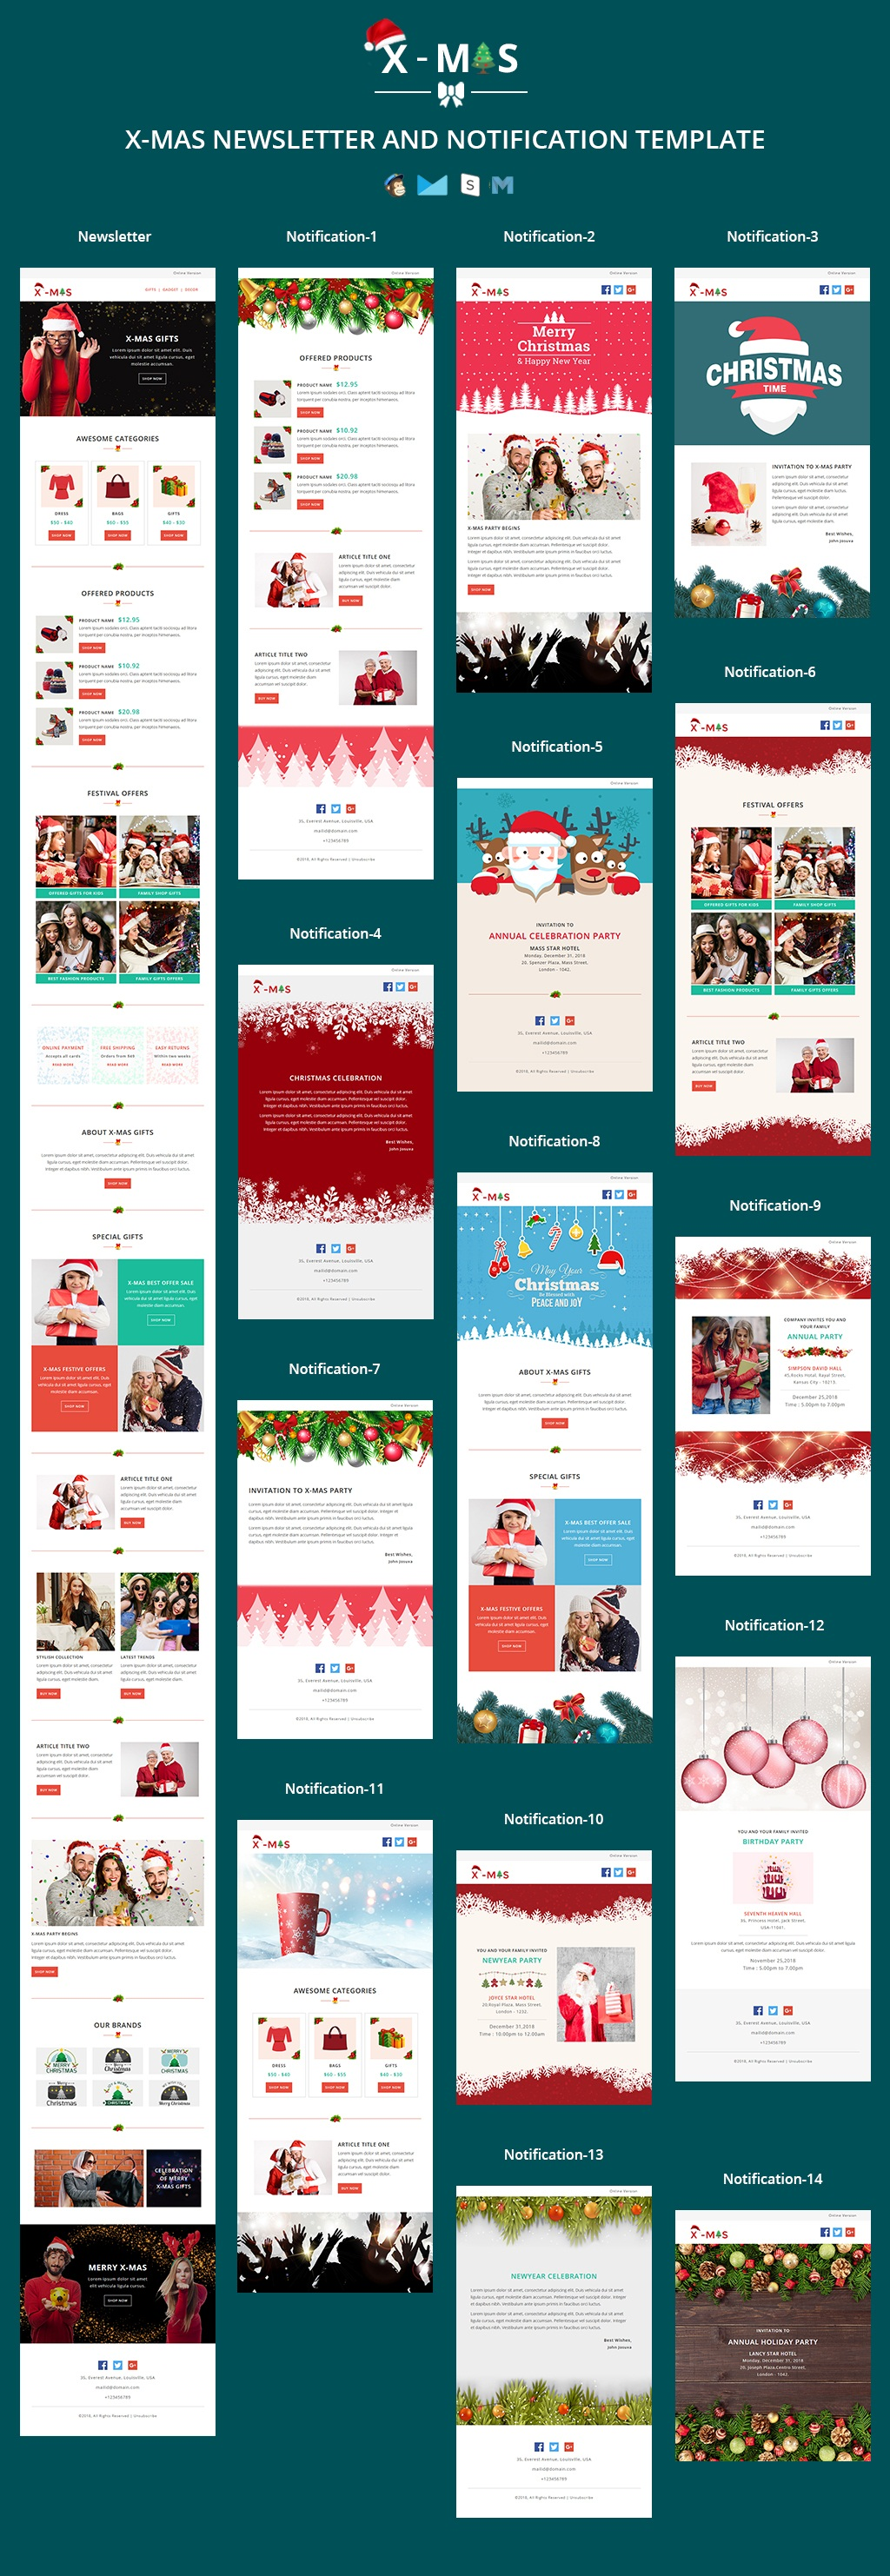 X-MAS - Responsive Newsletter and Notification Template with Stamp Ready Builder Access